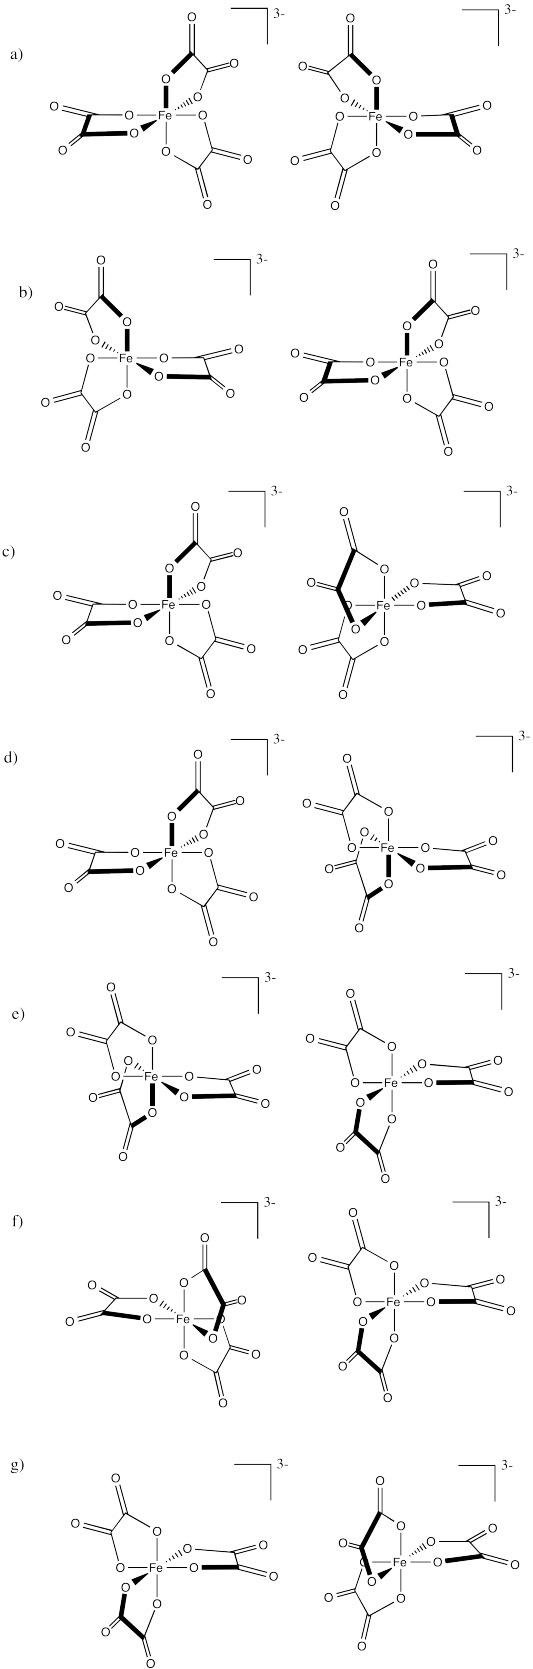 Enantiomers In Octahedral Complexes With Bidentate Ligands Chemistry Libretexts